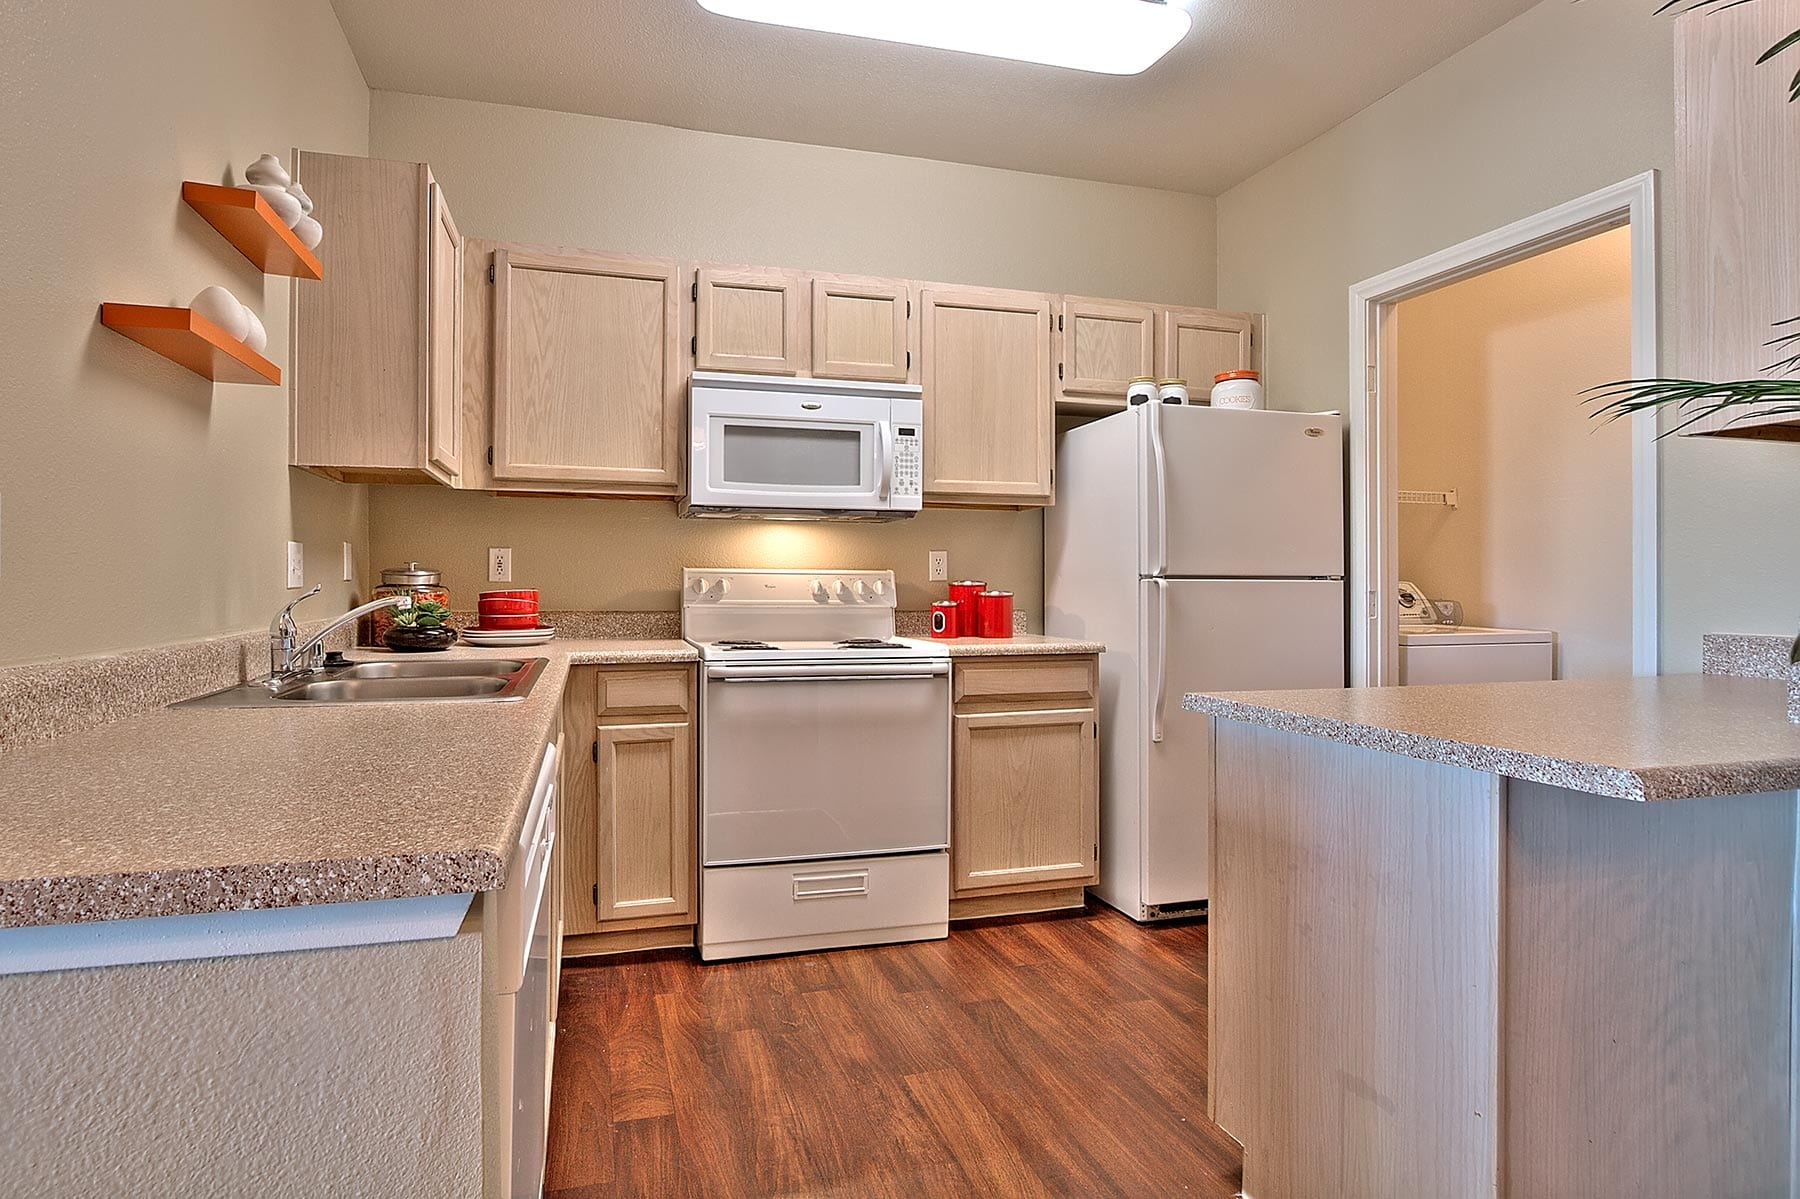 A San Croix apartment kitchen with smooth countertops, rich wood-like flooring, and matching appliances.